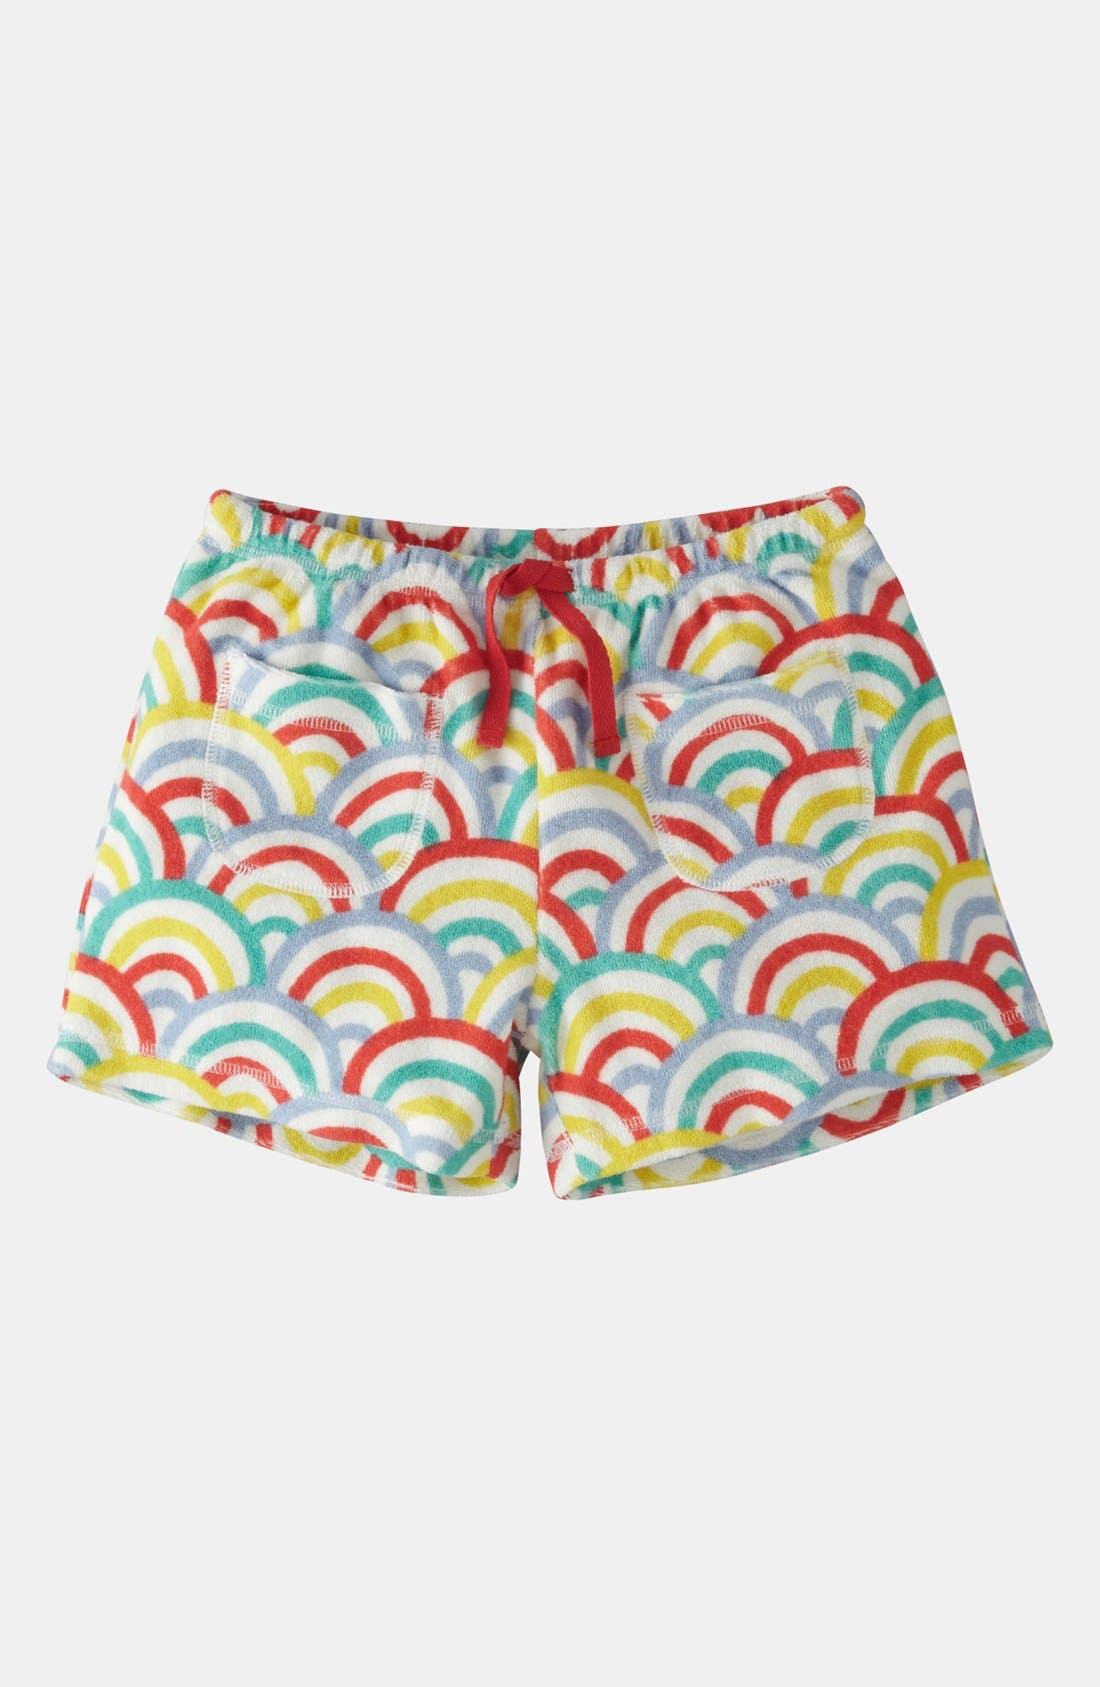 Alternate Image 1 Selected - Mini Boden 'Towelling' Shorts (Toddler)